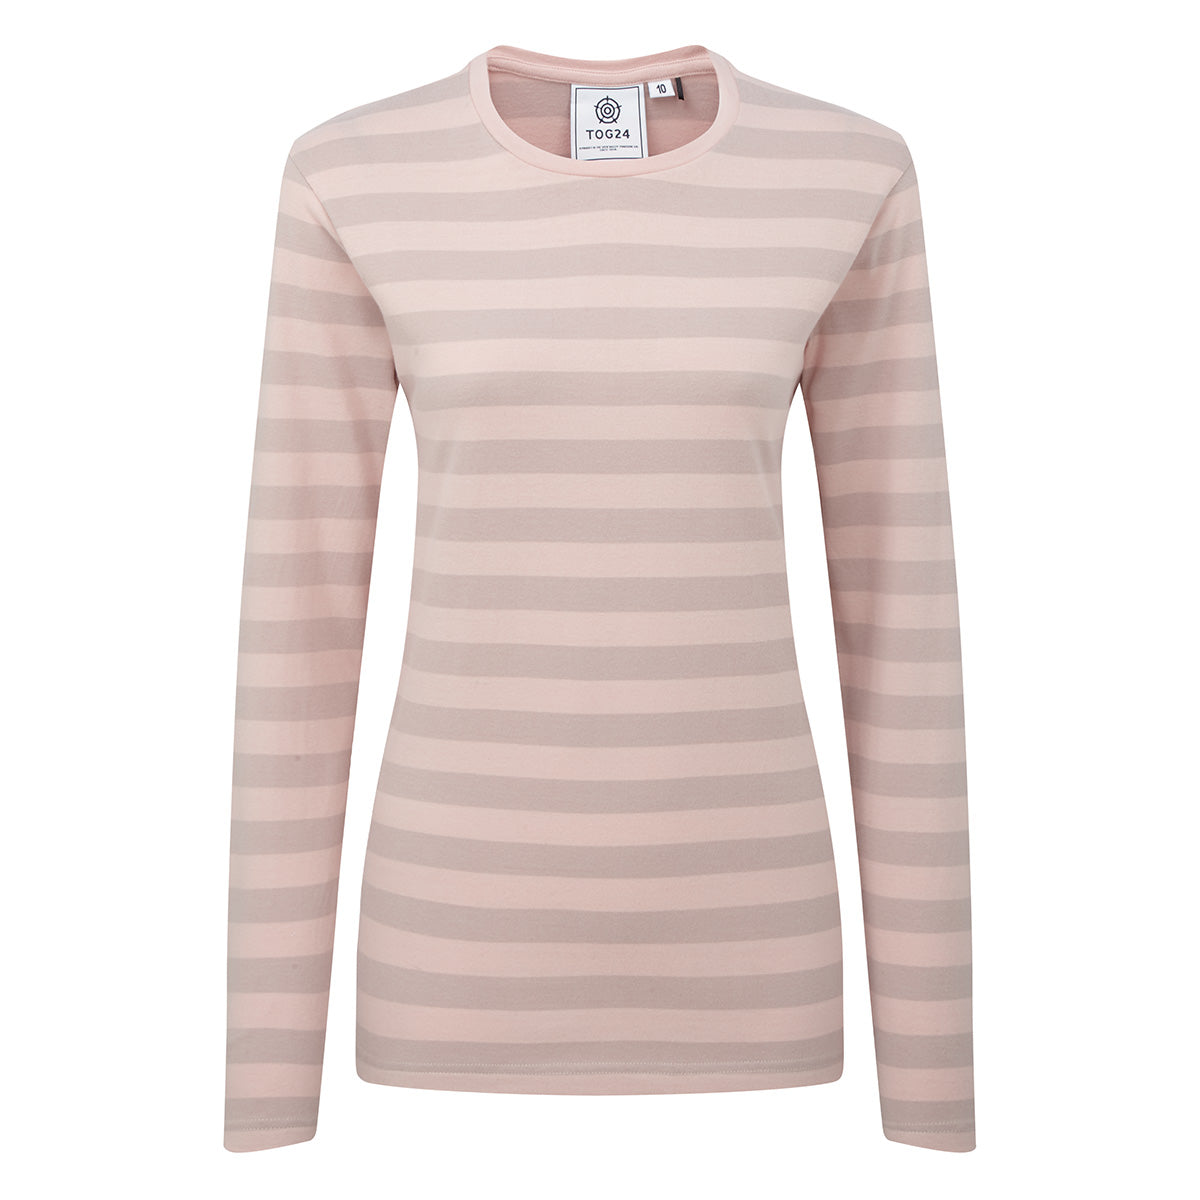 Sandsend Womens Long Sleeve Stripe T-Shirt - Rose image 4